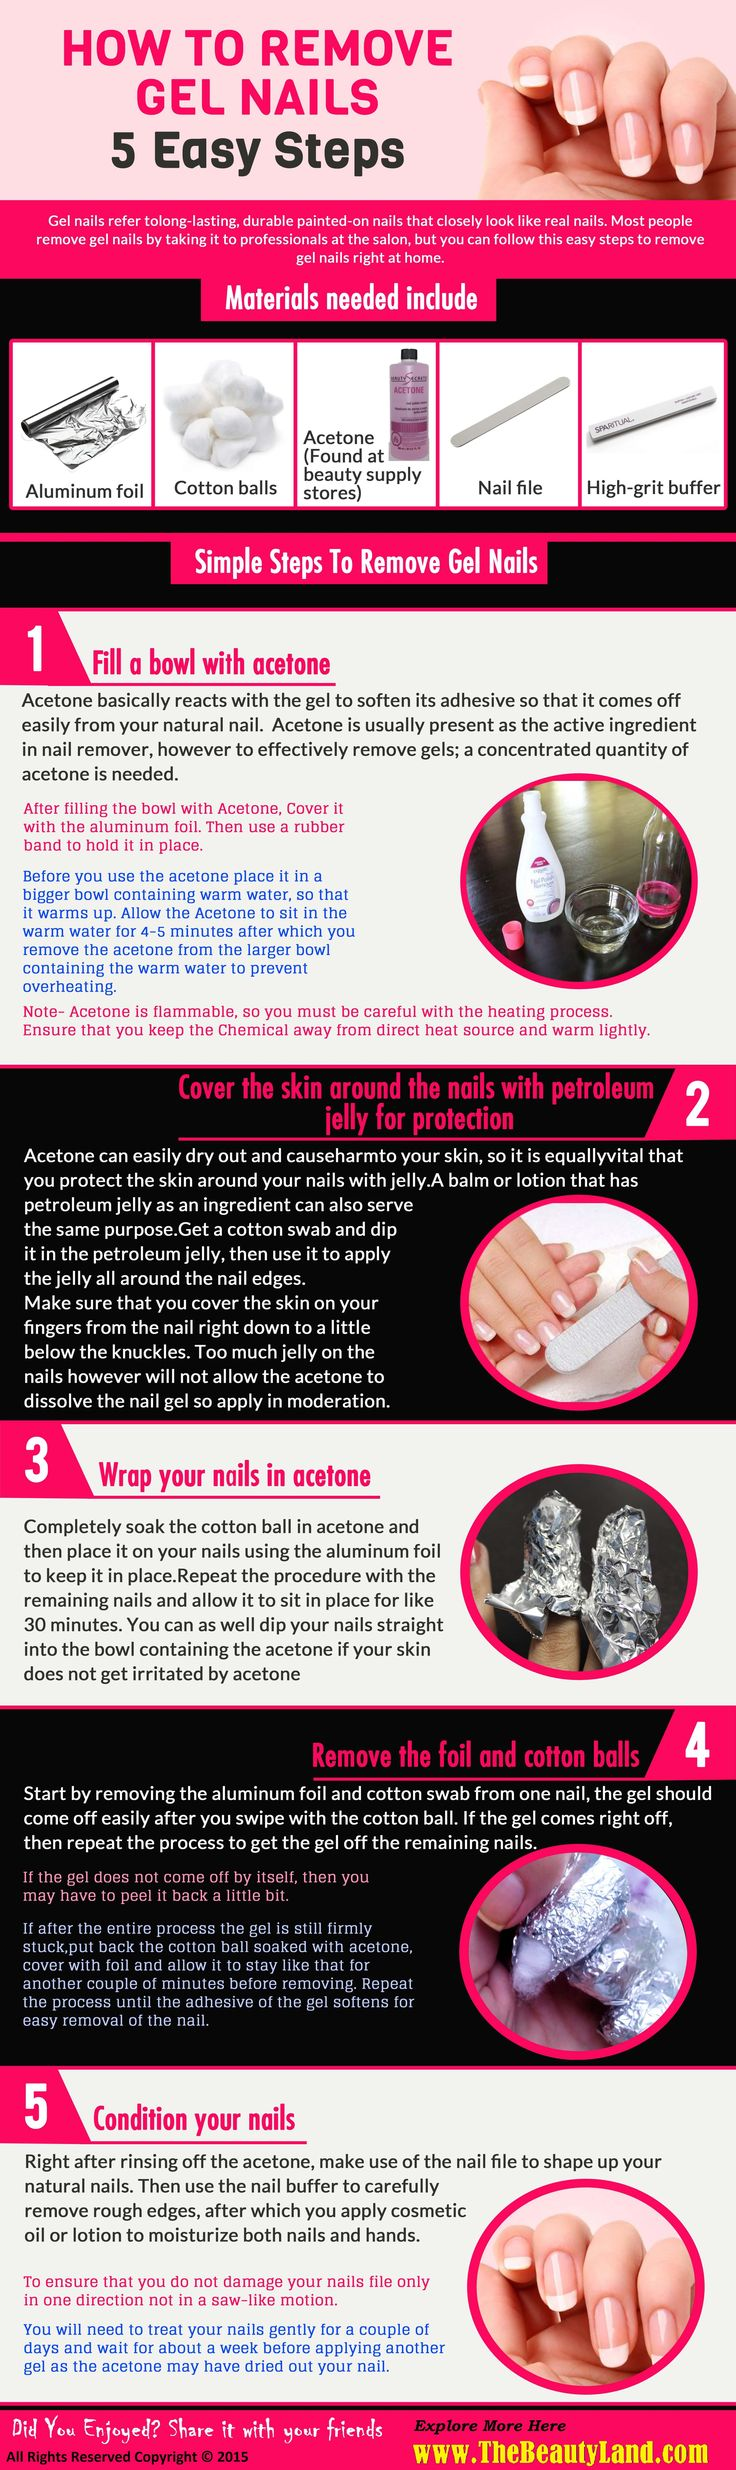 How to Remove #Gel #Nails – 5 Easy Steps http://www.thebeautyland.com/how-to-remove-gel-nails/ #nailcare                                                                                                                                                                                 More